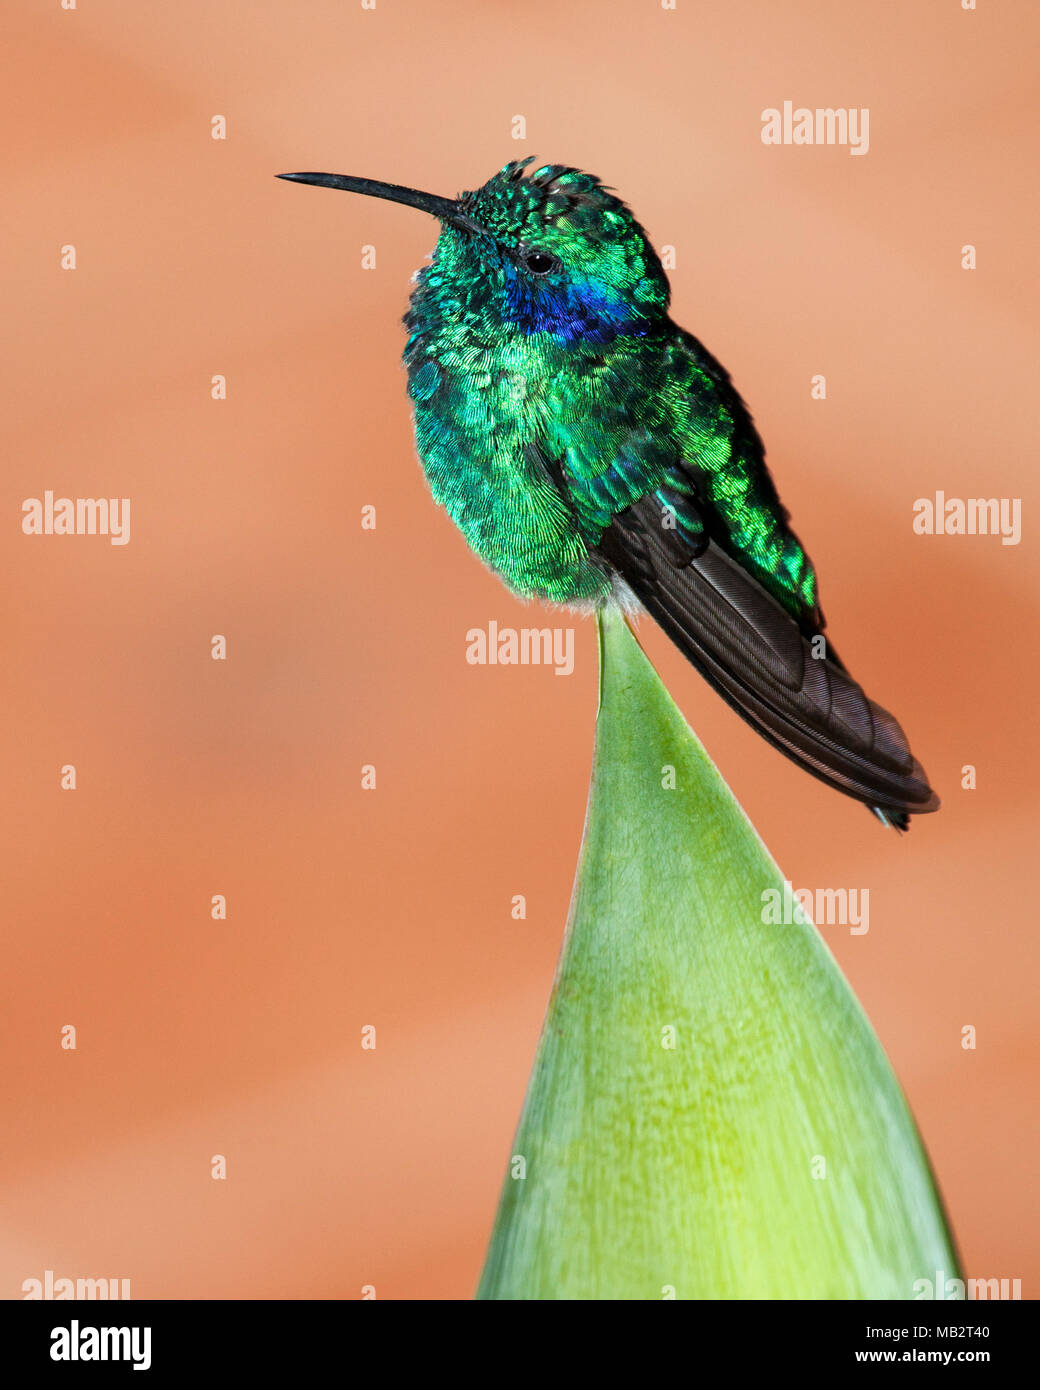 Lesser violet-ear hummingbird (Colibri cyanotus cabanidis) perched on green plant leaf in tropical garden. - Stock Image